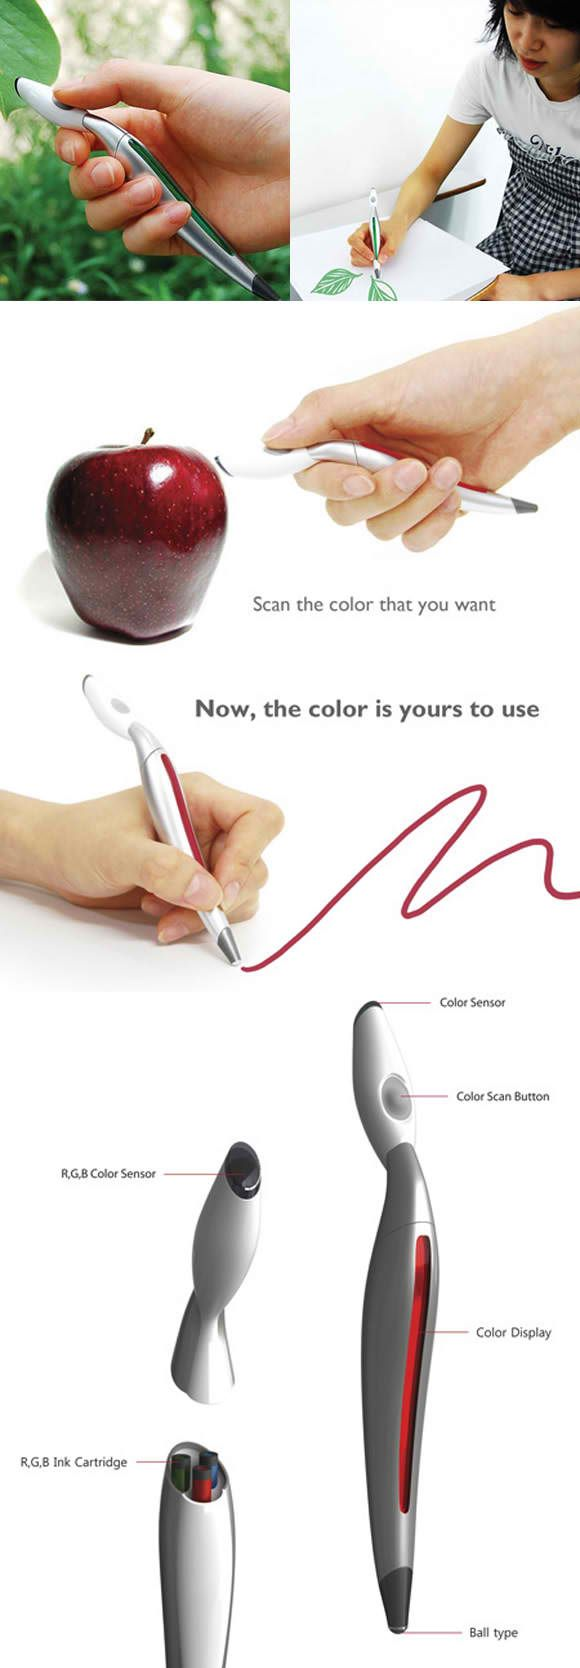 scan the color you want, and the pen makes the ink. BRILLIANT! My kids would go crazy for this (and so would everyone in our creative department!)